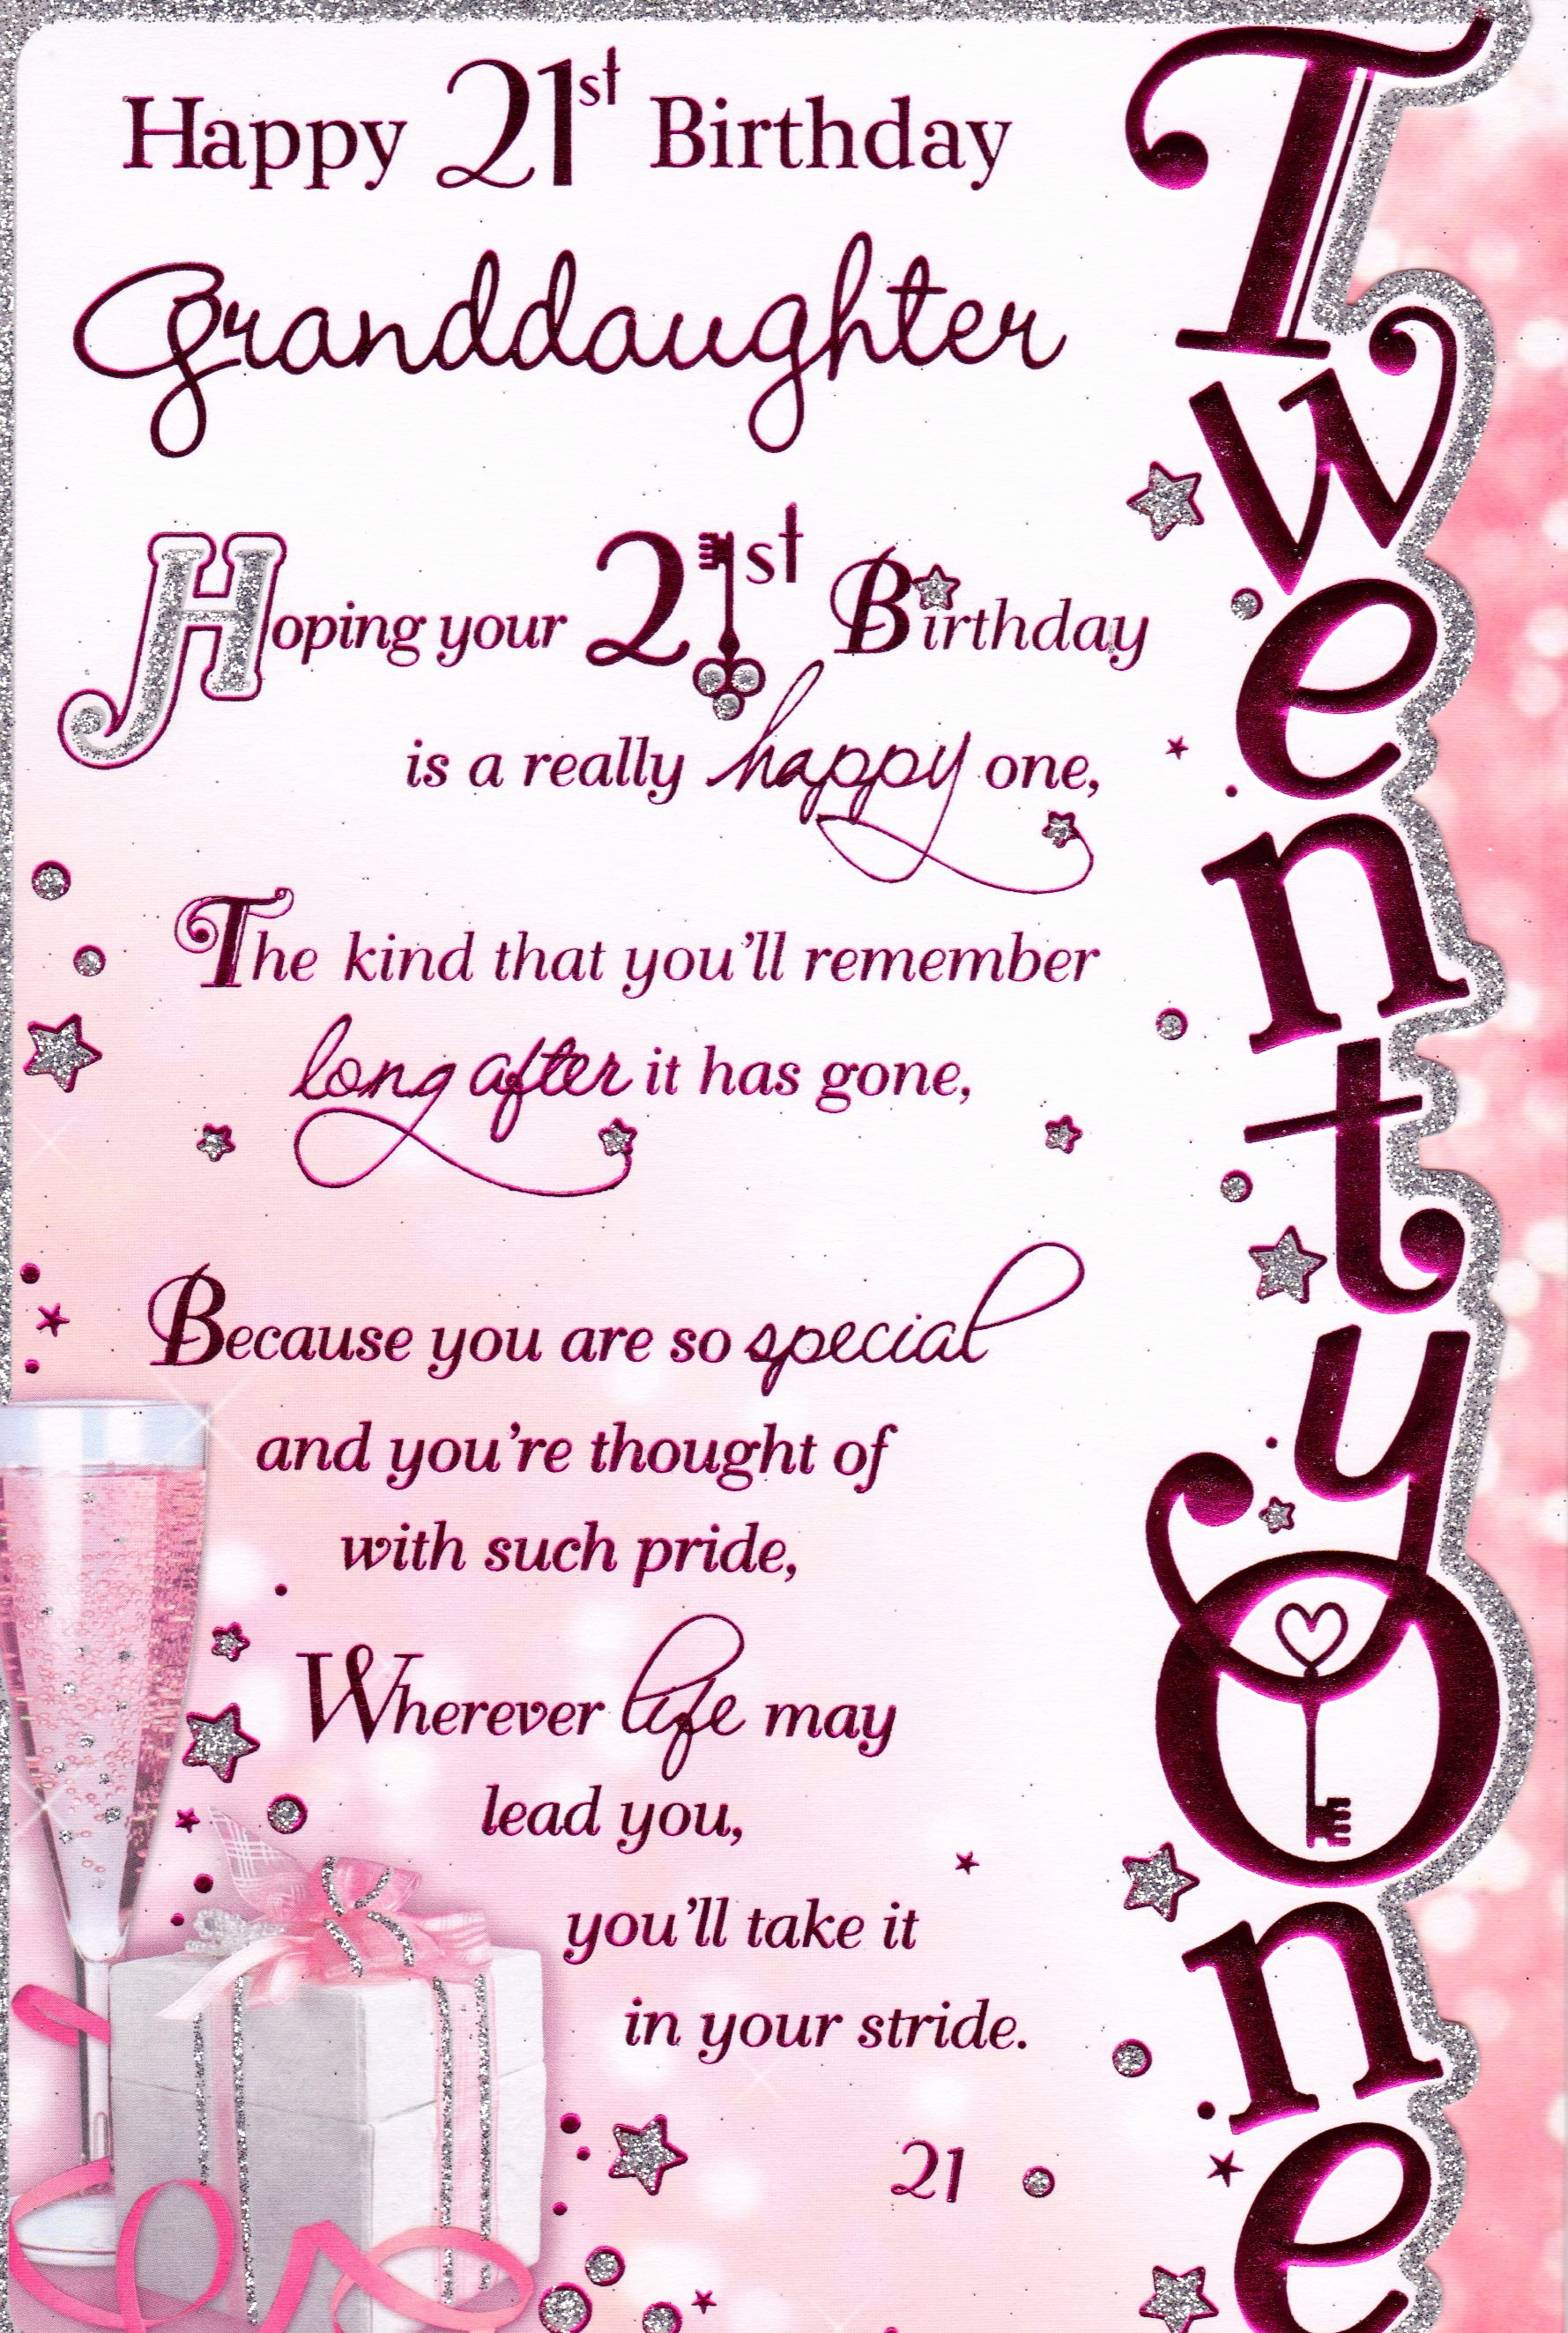 21st birthday card messages for daughter ; birthday-card-poems-for-daughter-awesome-happy-21st-birthday-wishes-messages-and-cards-9-happy-birthday-of-birthday-card-poems-for-daughter